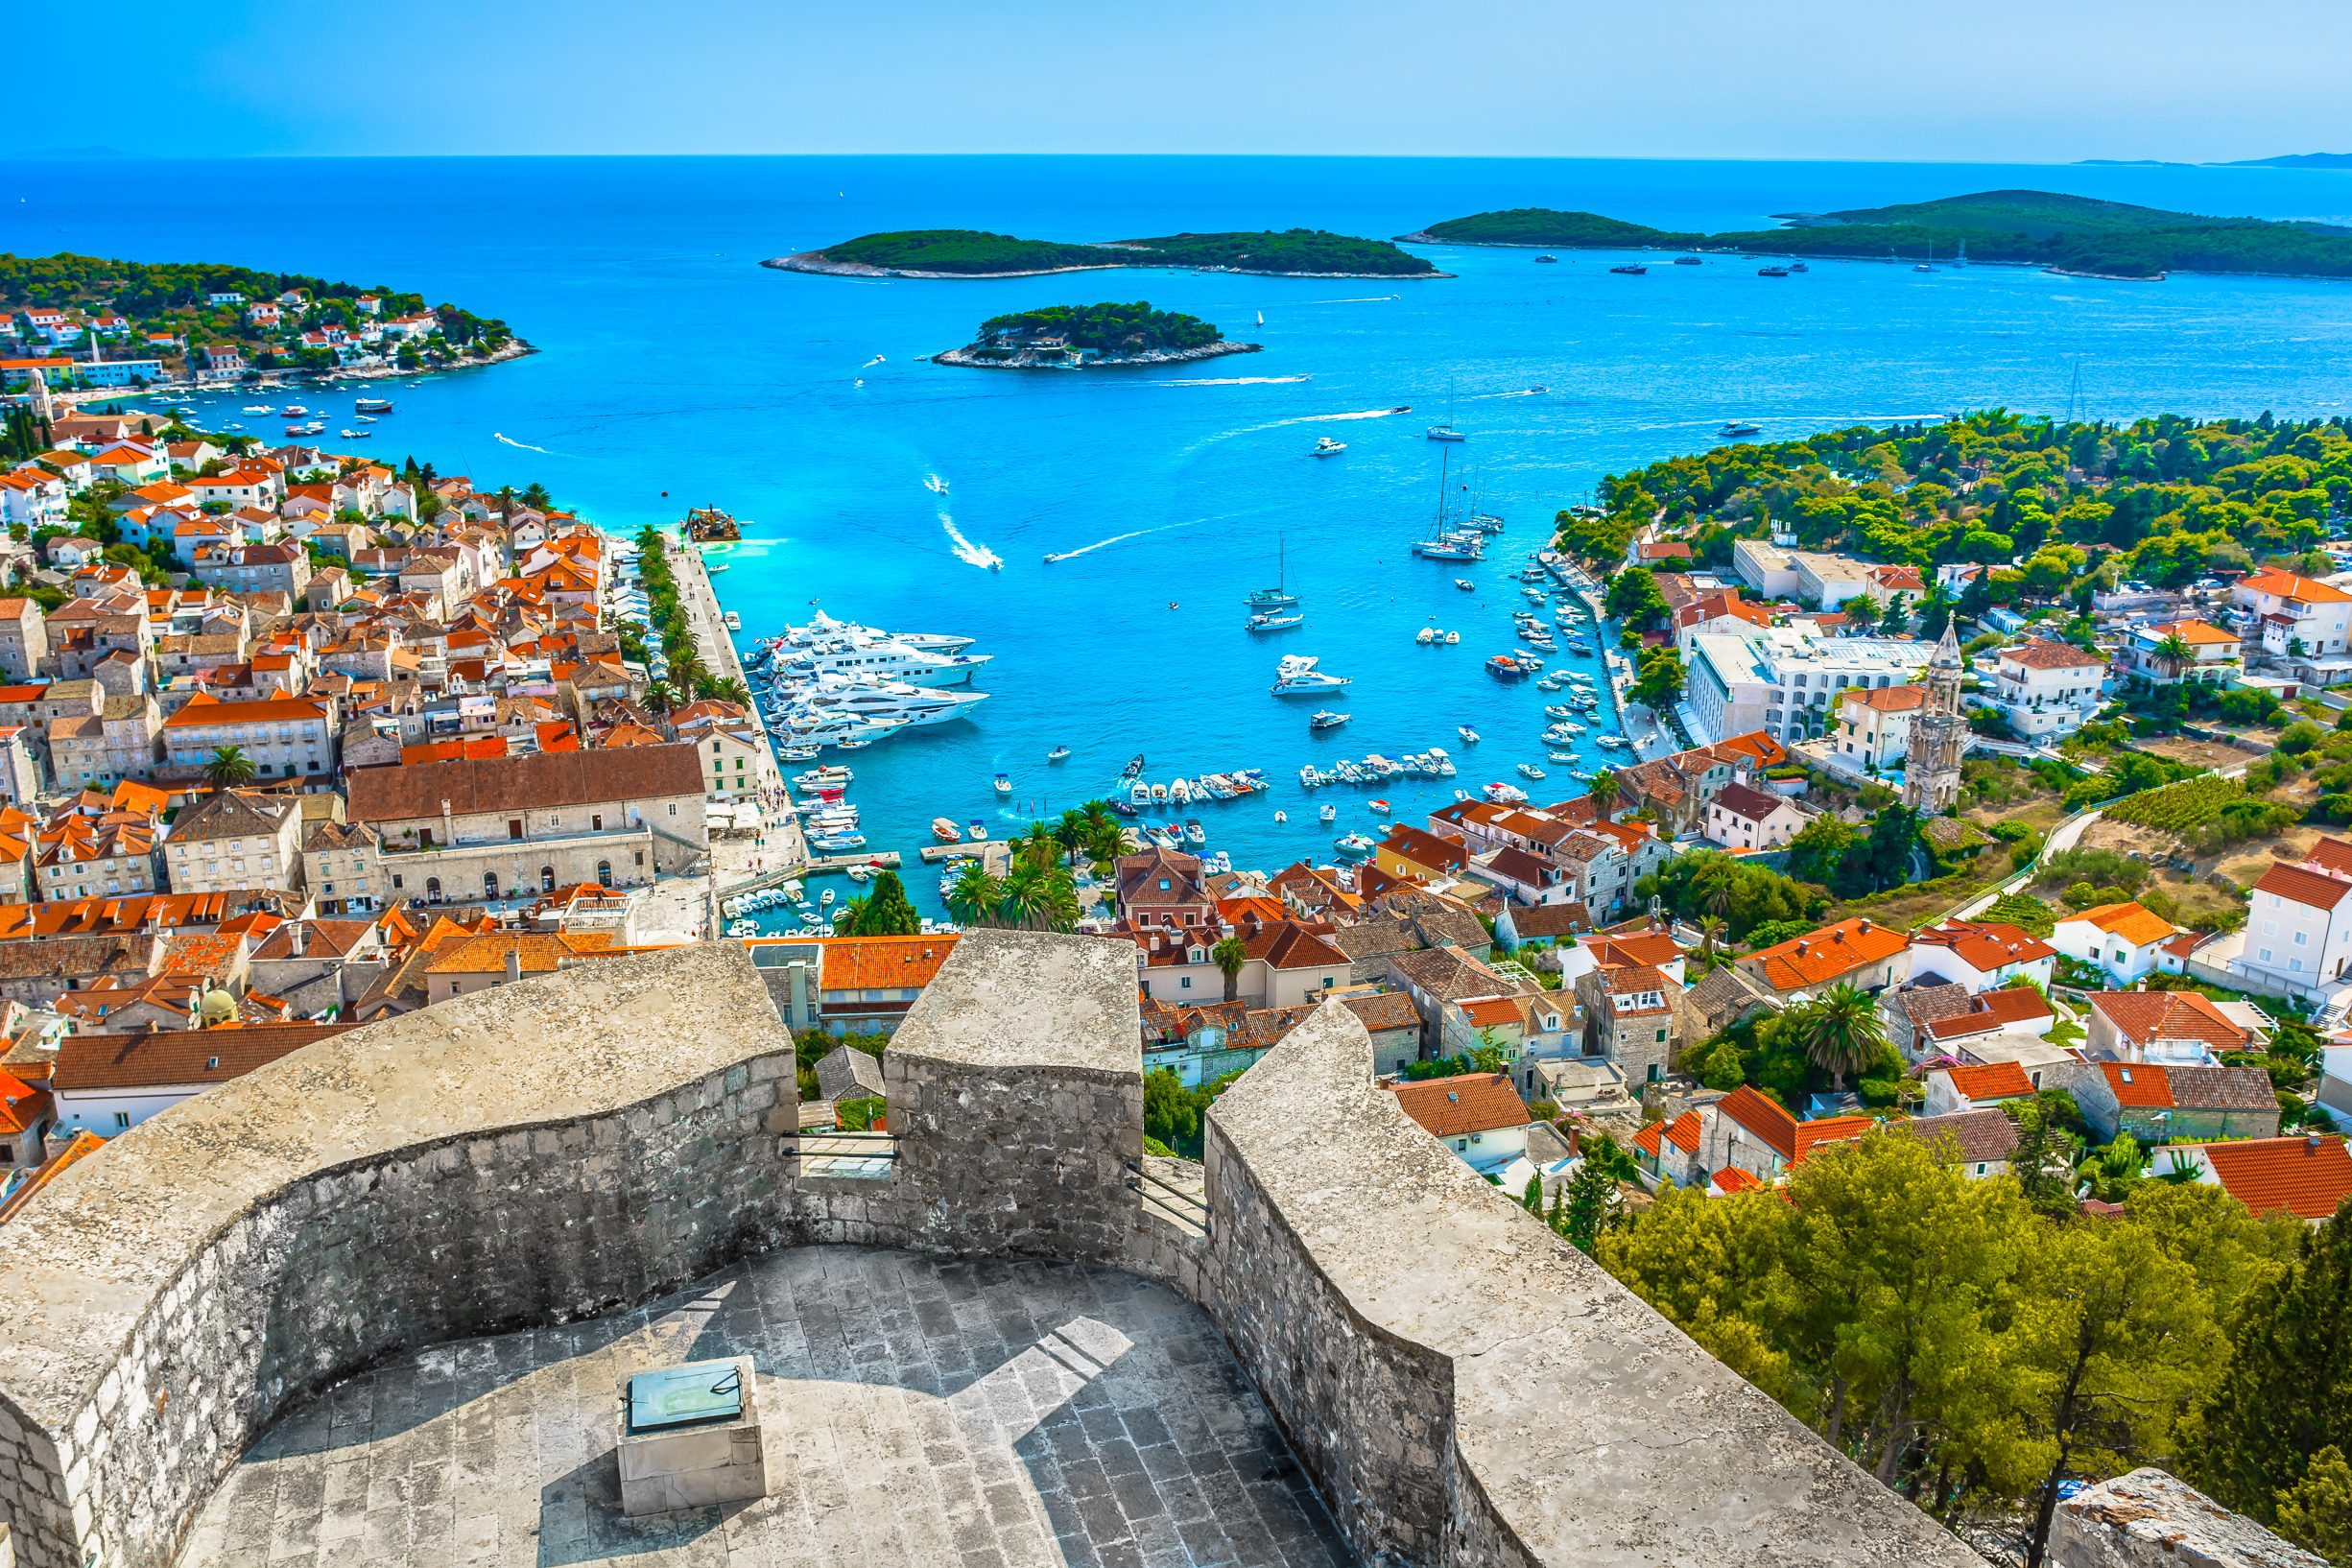 Hvar island and the Pakleni islands, Croatia